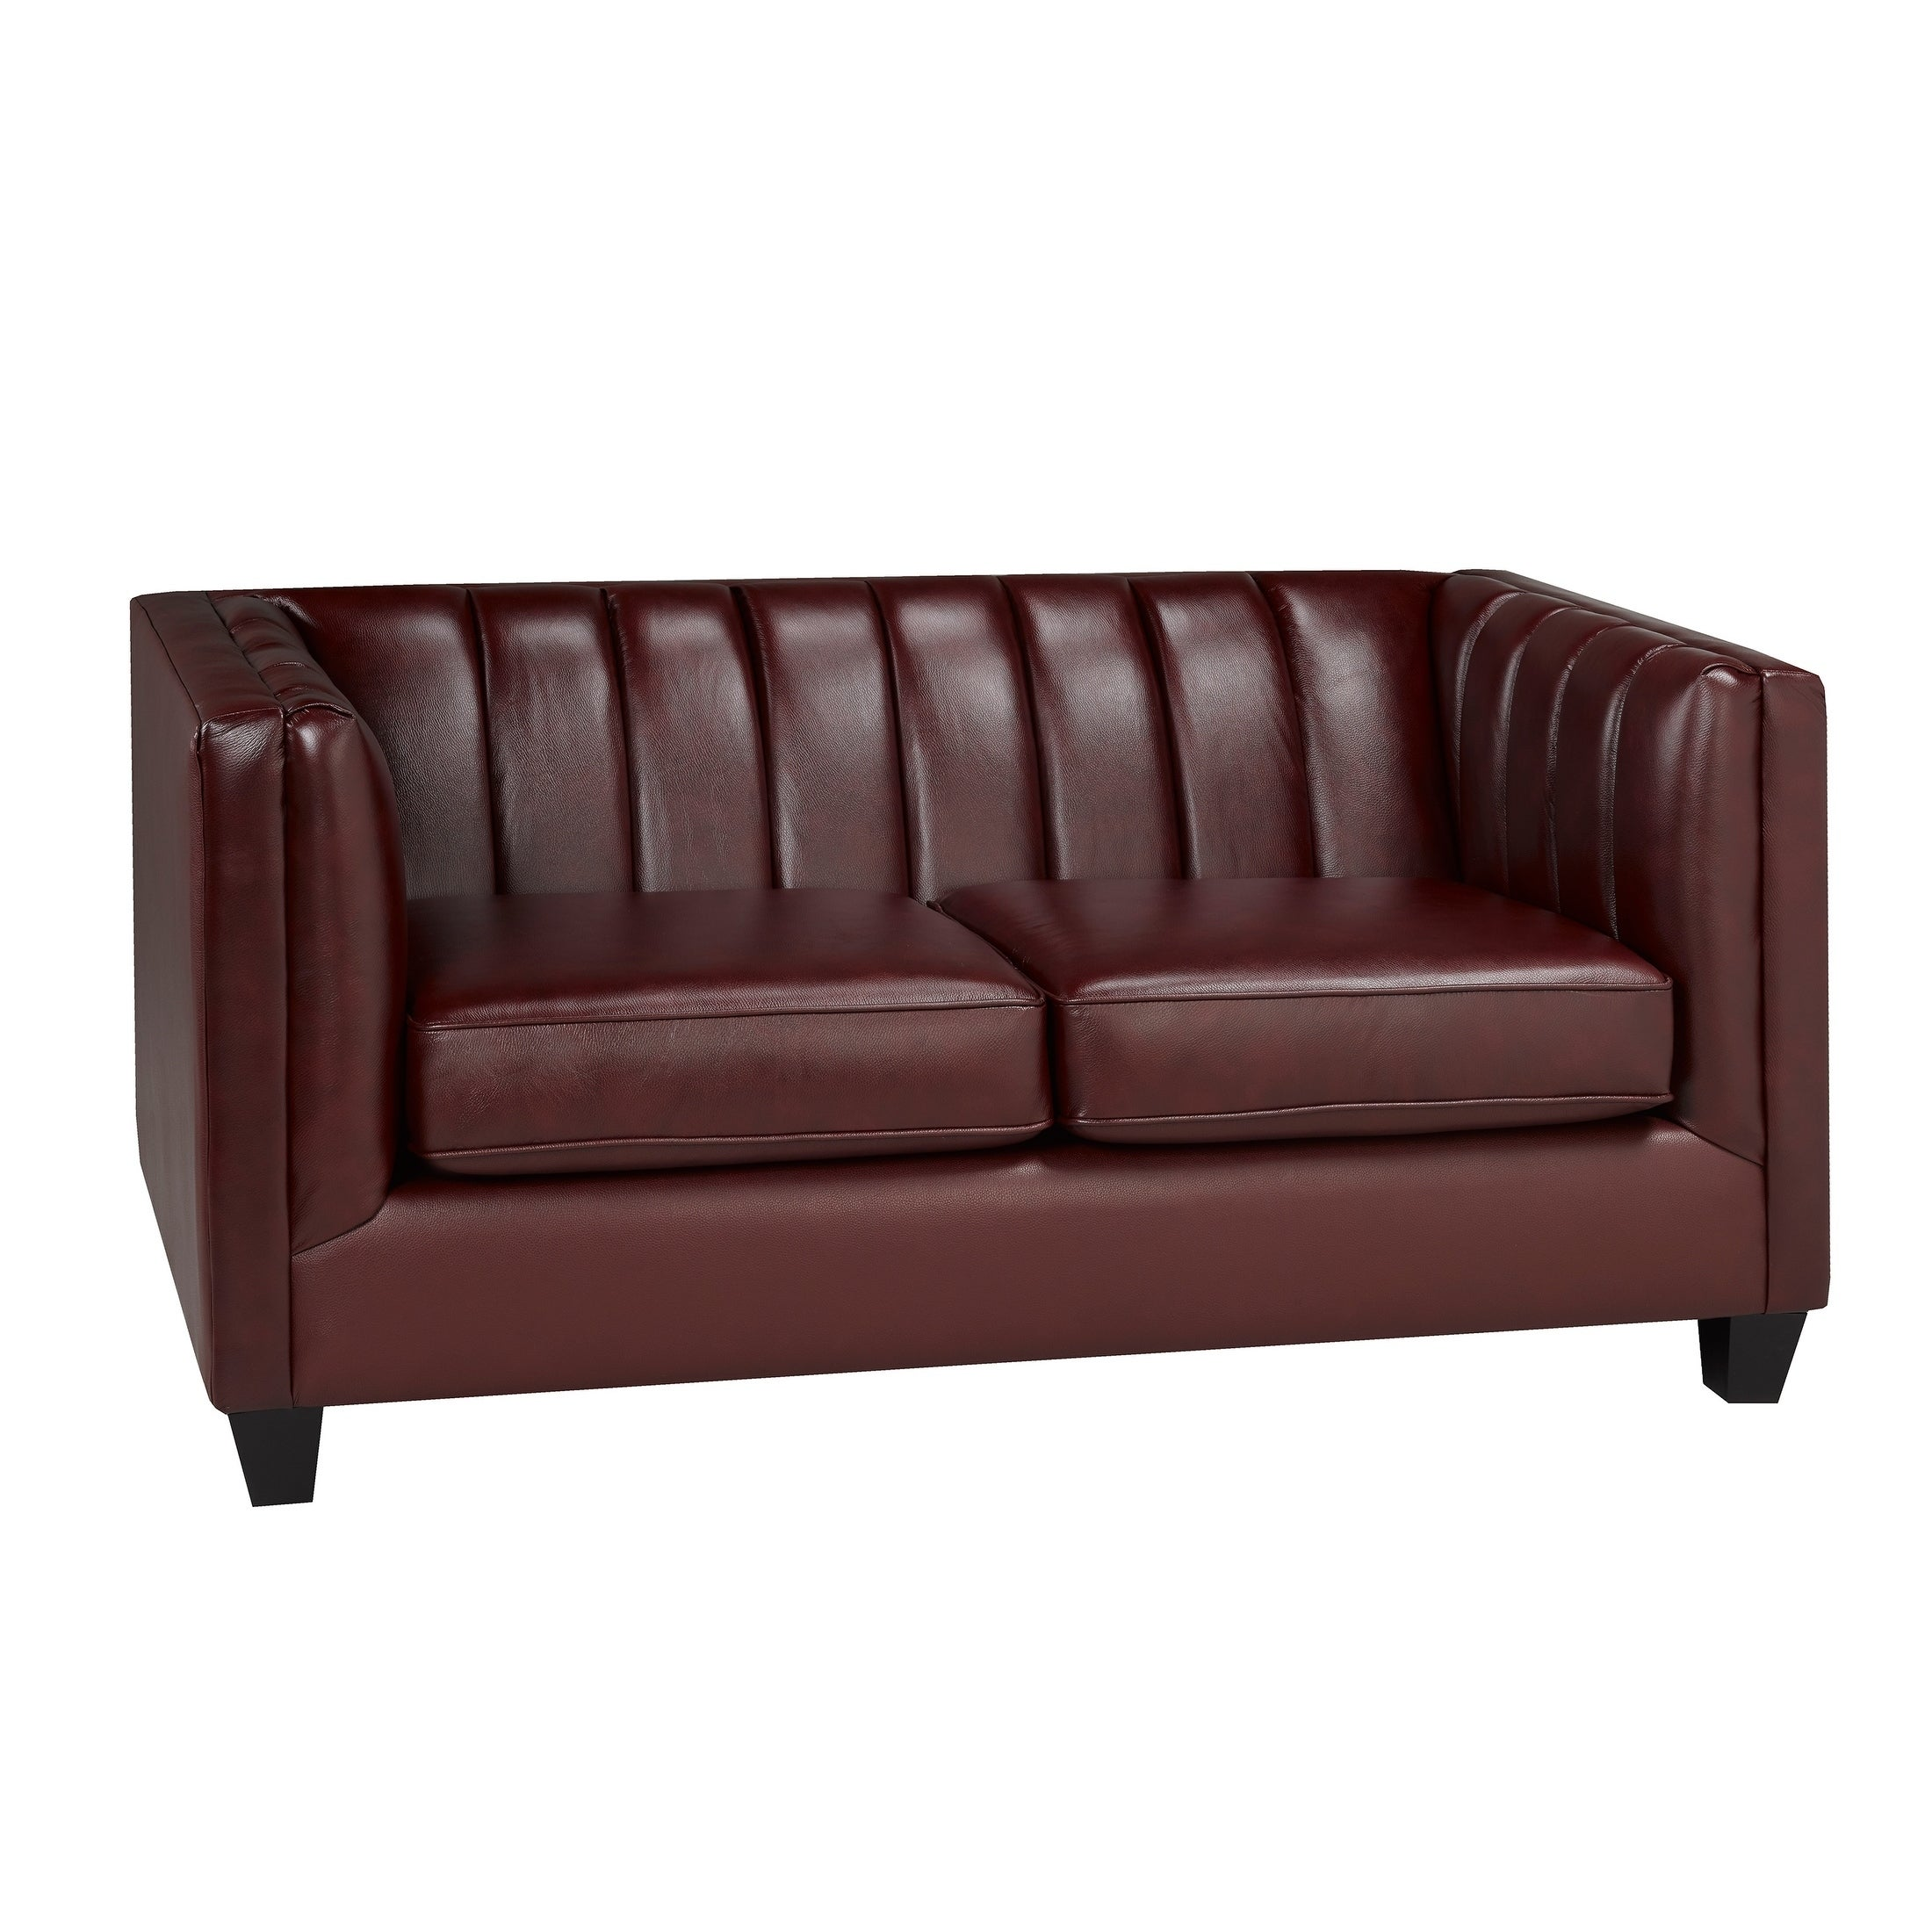 Outstanding Hastings Top Grain Leather Loveseat Andrewgaddart Wooden Chair Designs For Living Room Andrewgaddartcom